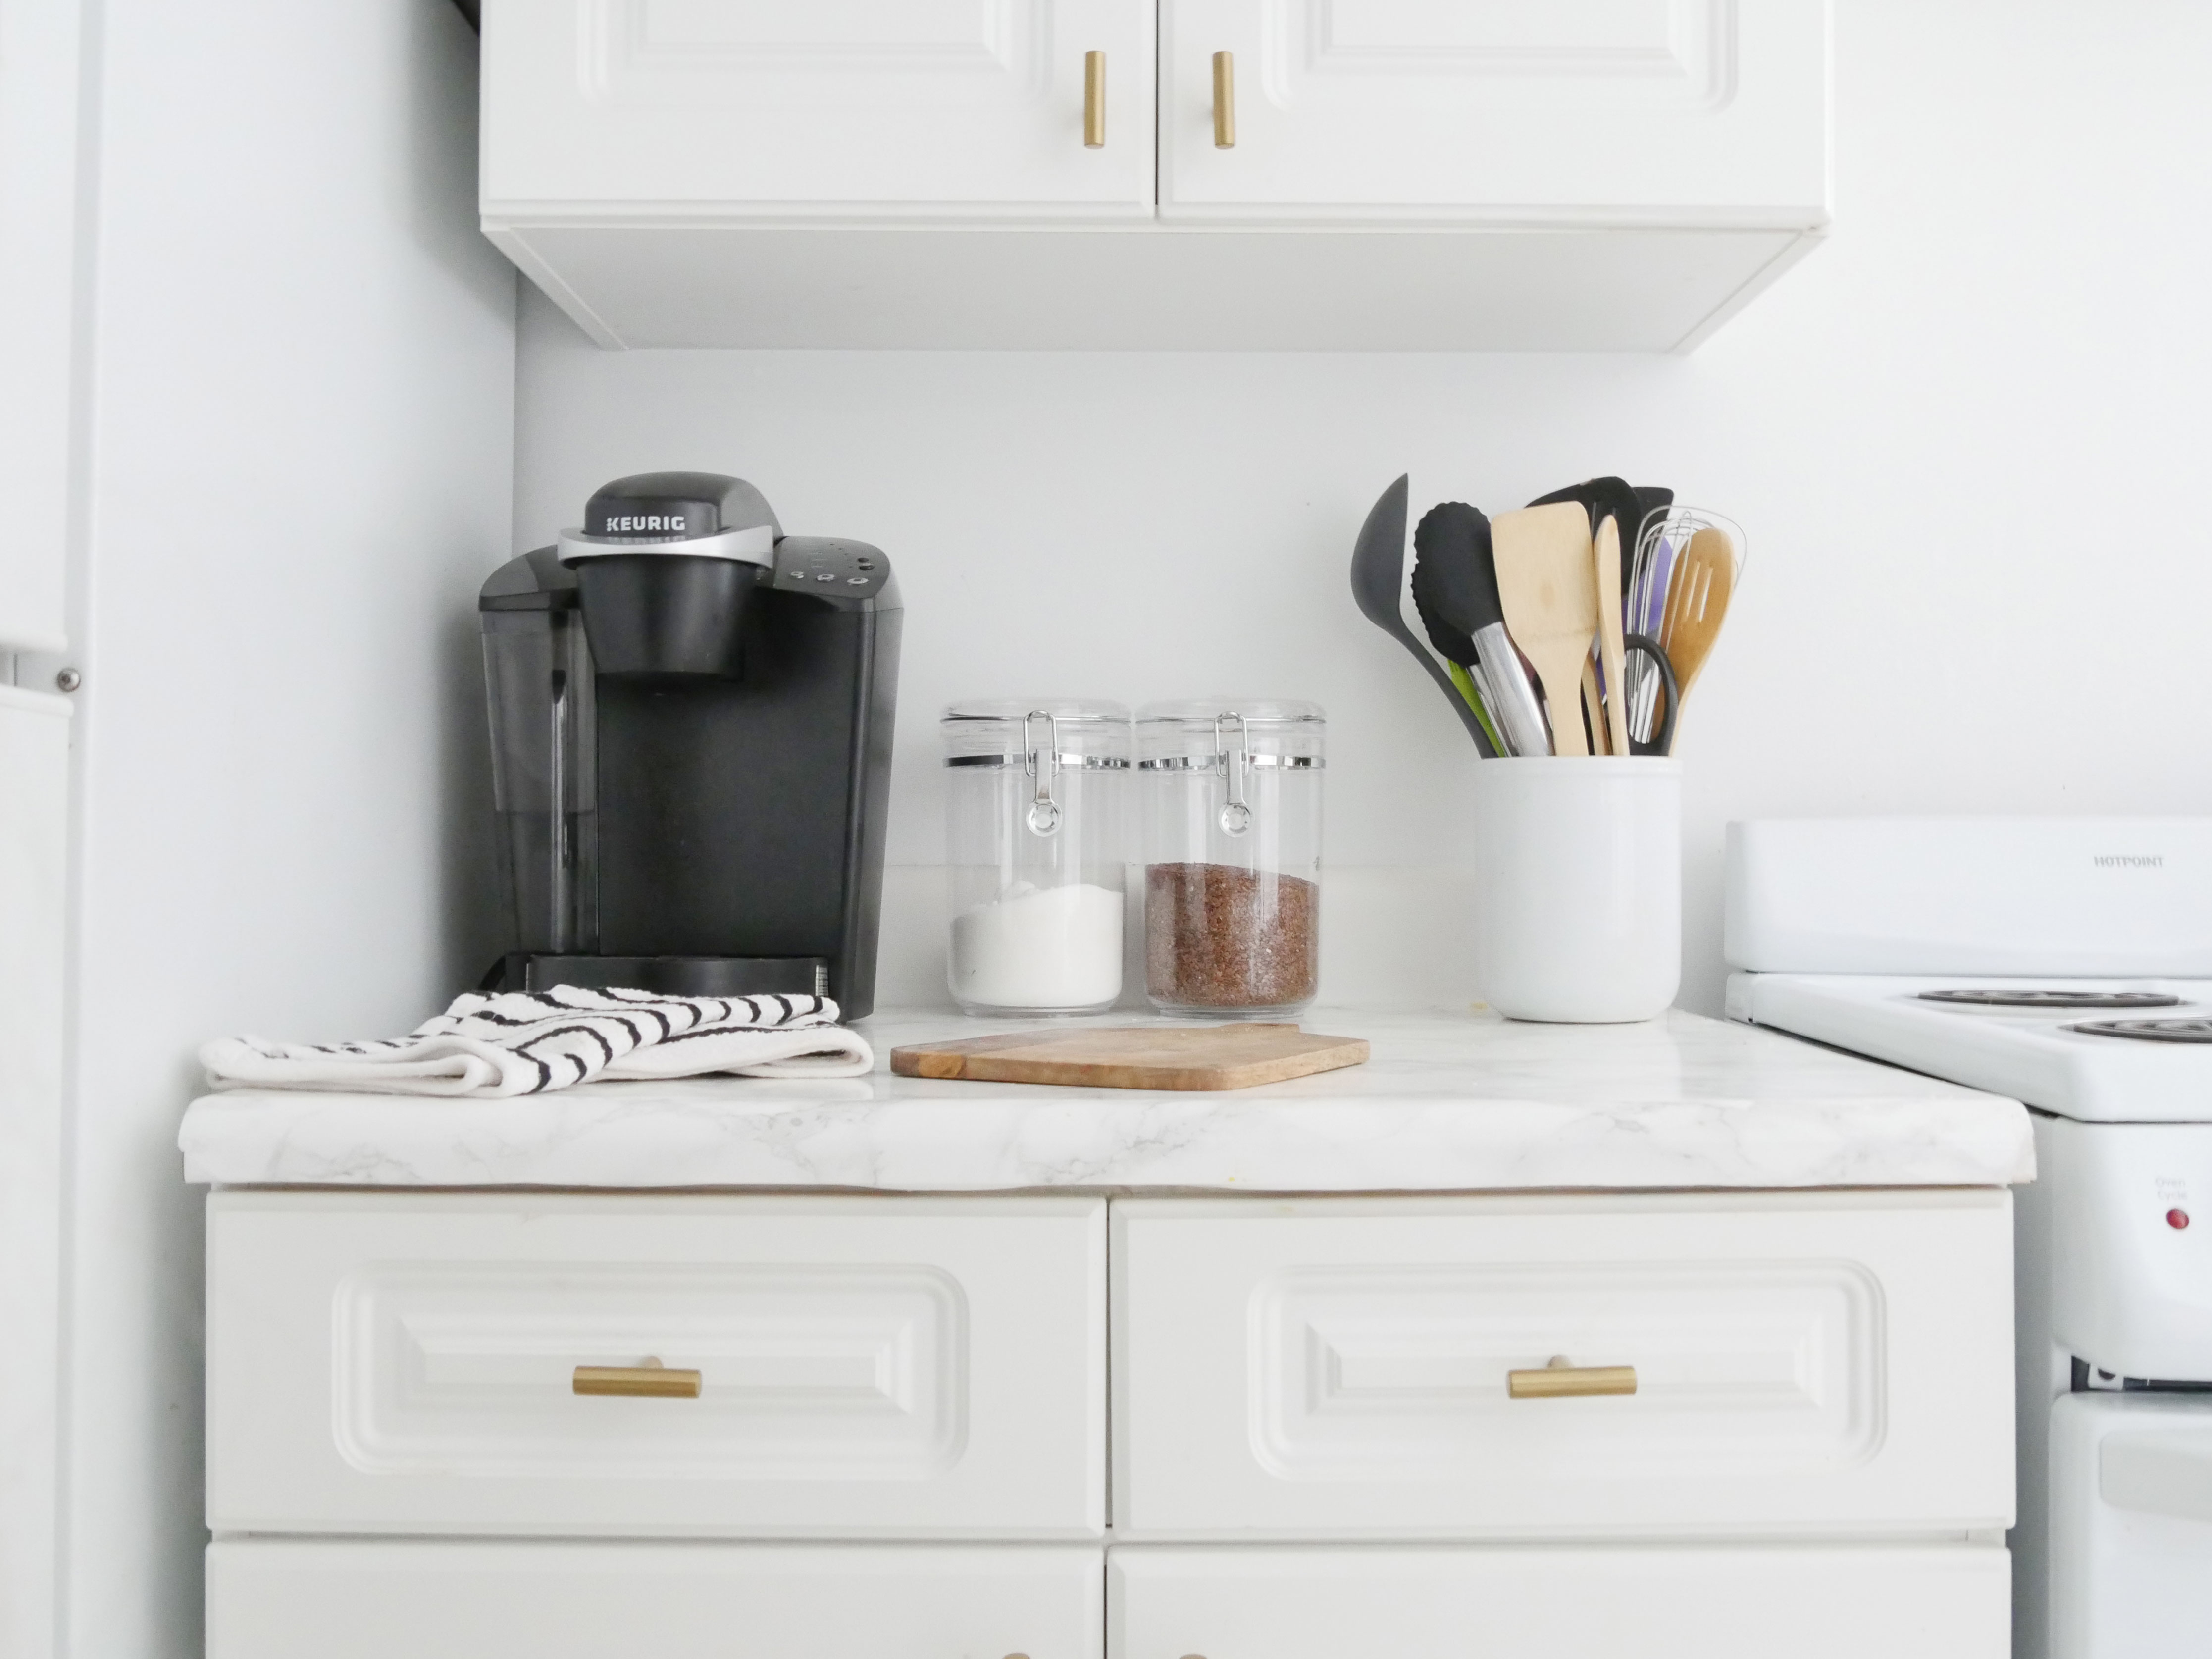 how to decorate your kitchen lights countertop city chic decor most people stick with the usual black appliances however switching it up can create a stunning visual impact i bought white keurig for my next